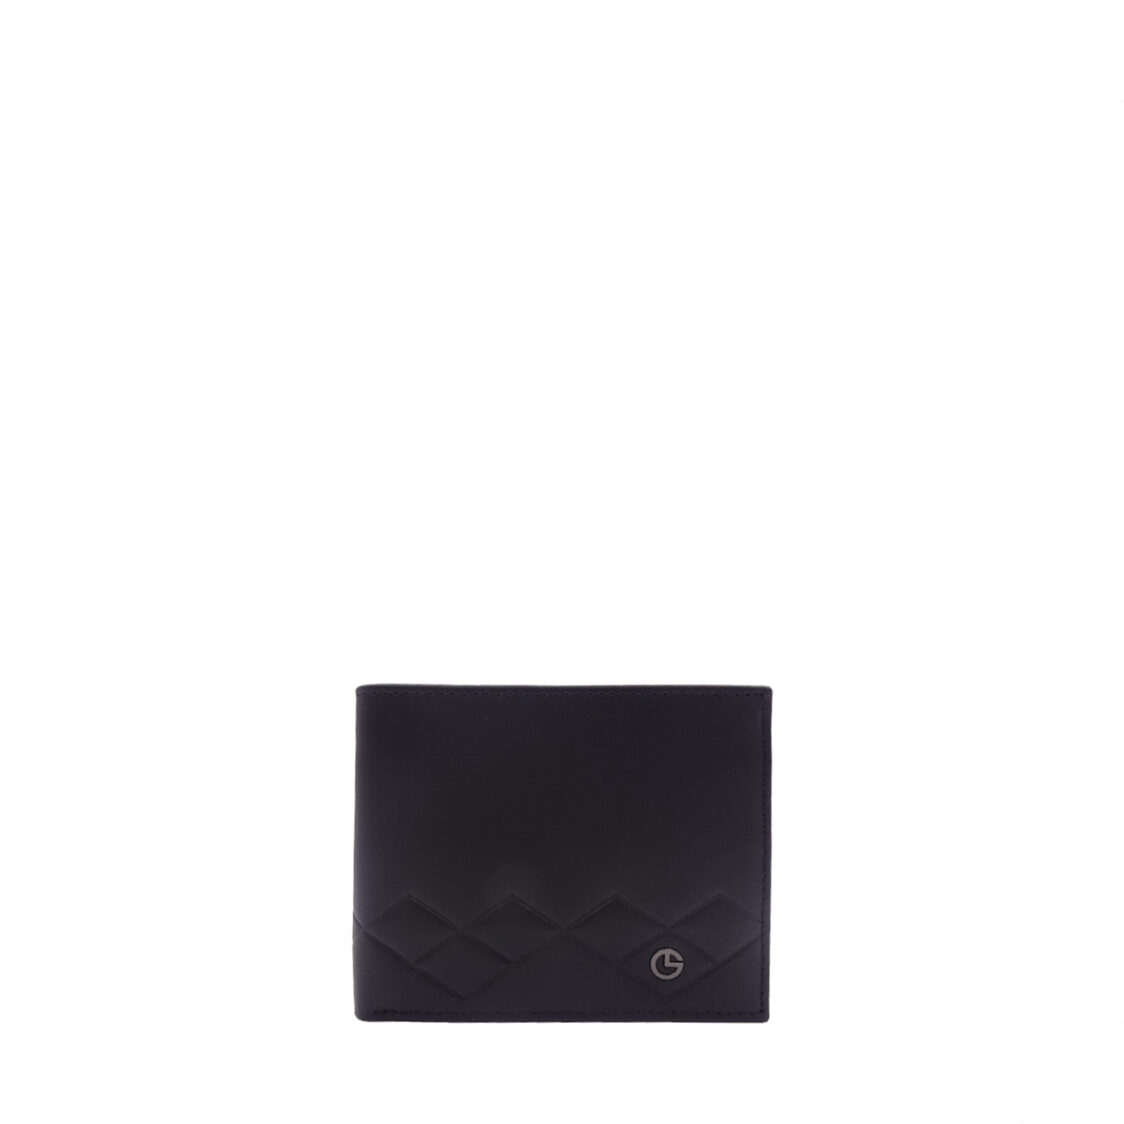 Goldlion Leather Wallet Black RWH875TG91N